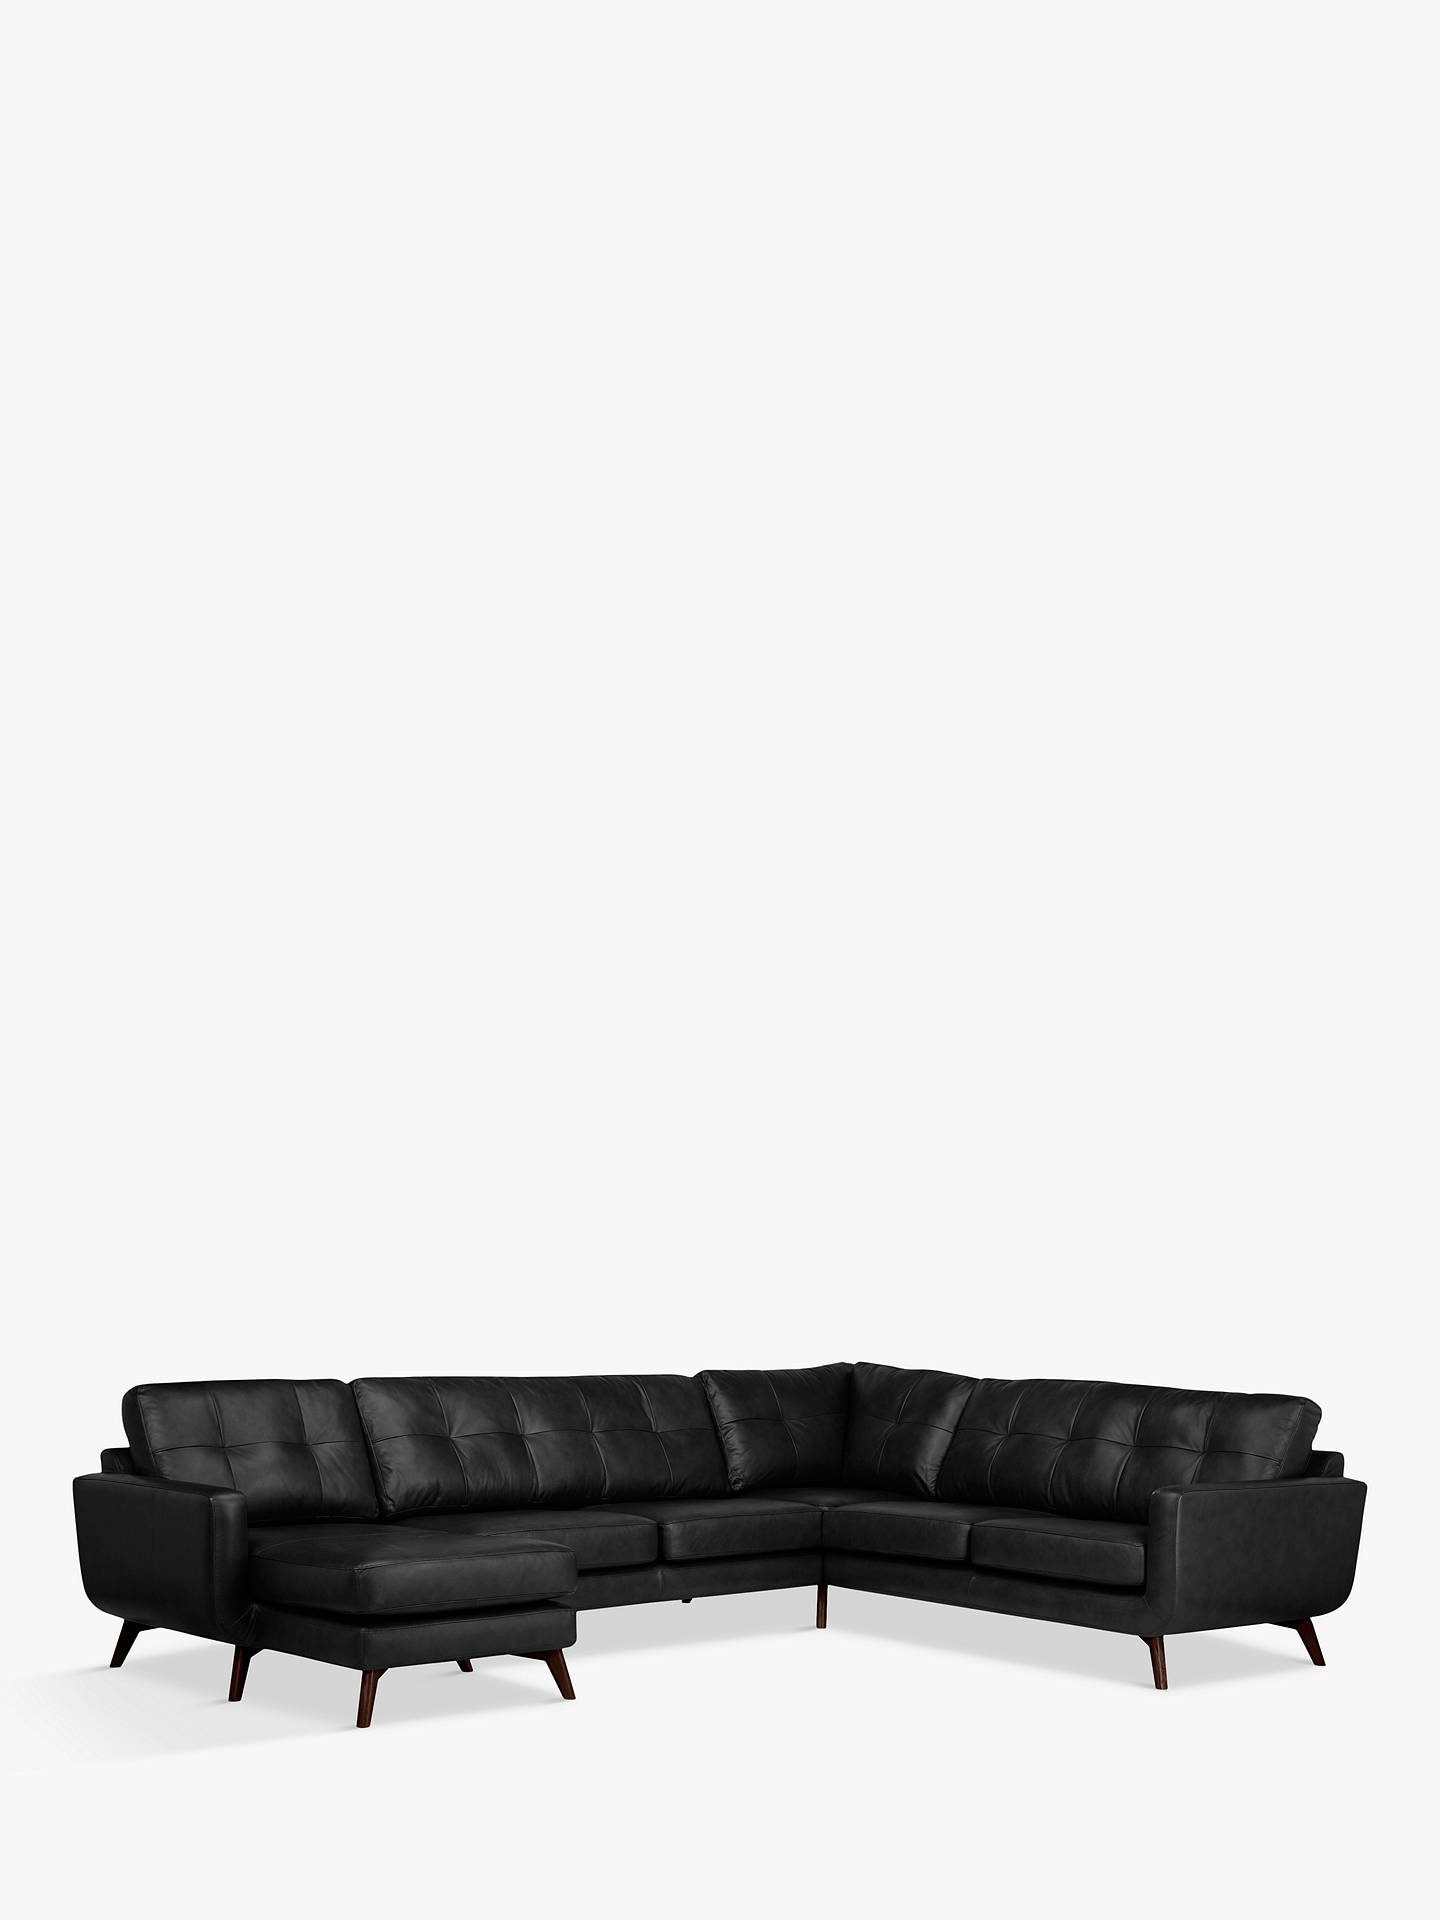 Buy John Lewis & Partners Barbican Leather LHF Grand Corner Chaise End Sofa, Dark Leg, Contempo Black Online at johnlewis.com